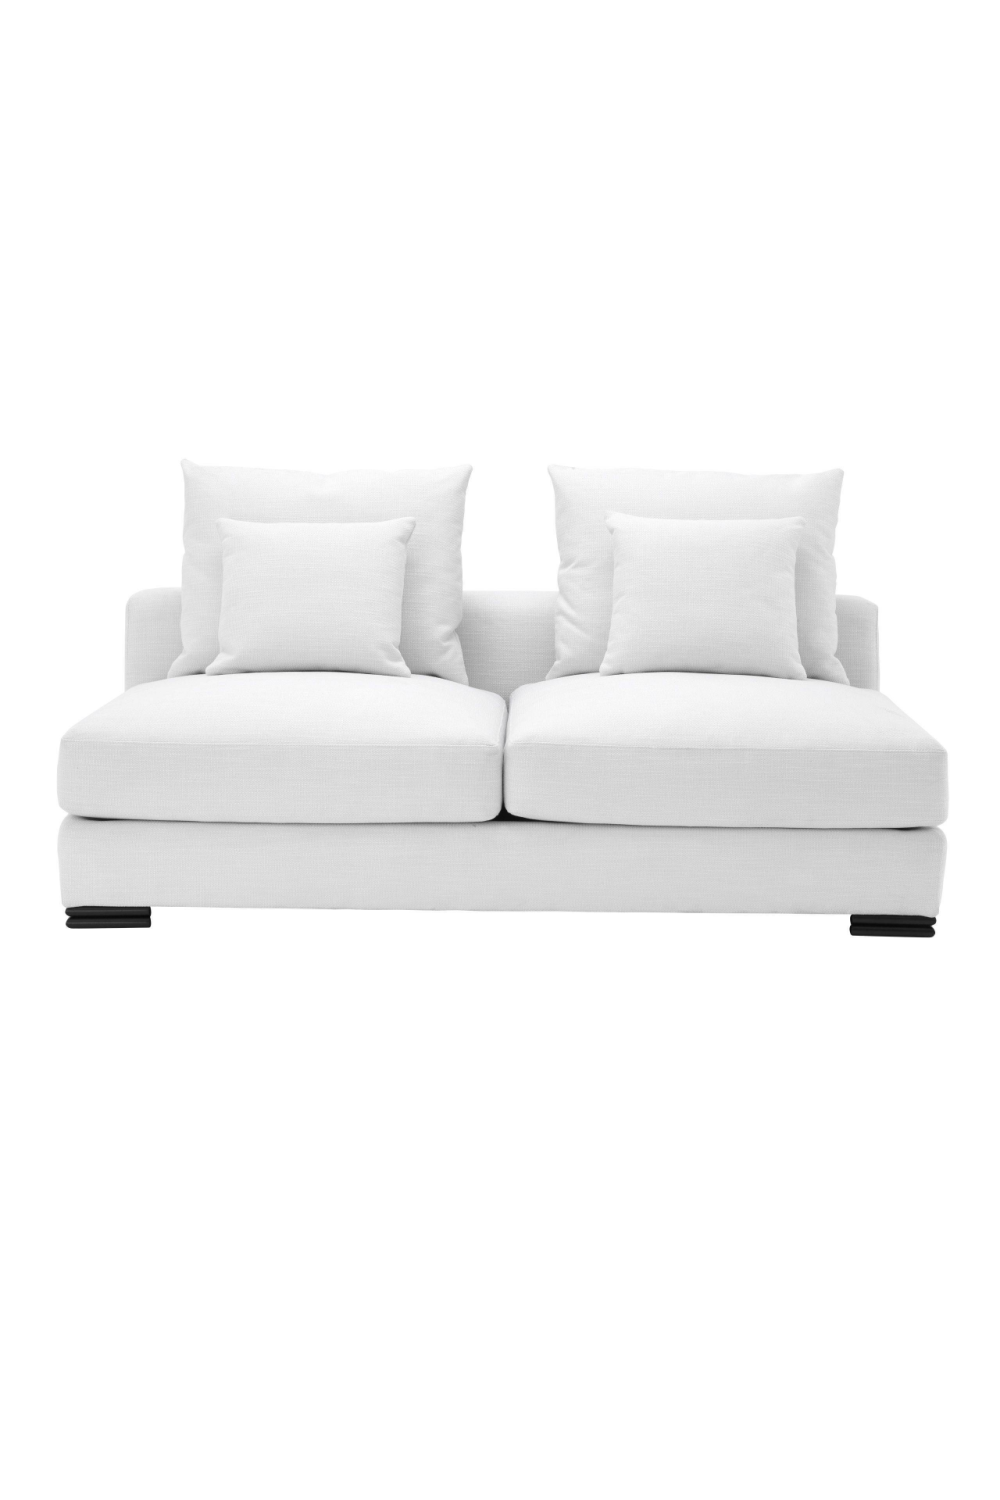 Avalon Modular White 2-Seater Sofa | Eichholtz Clifford